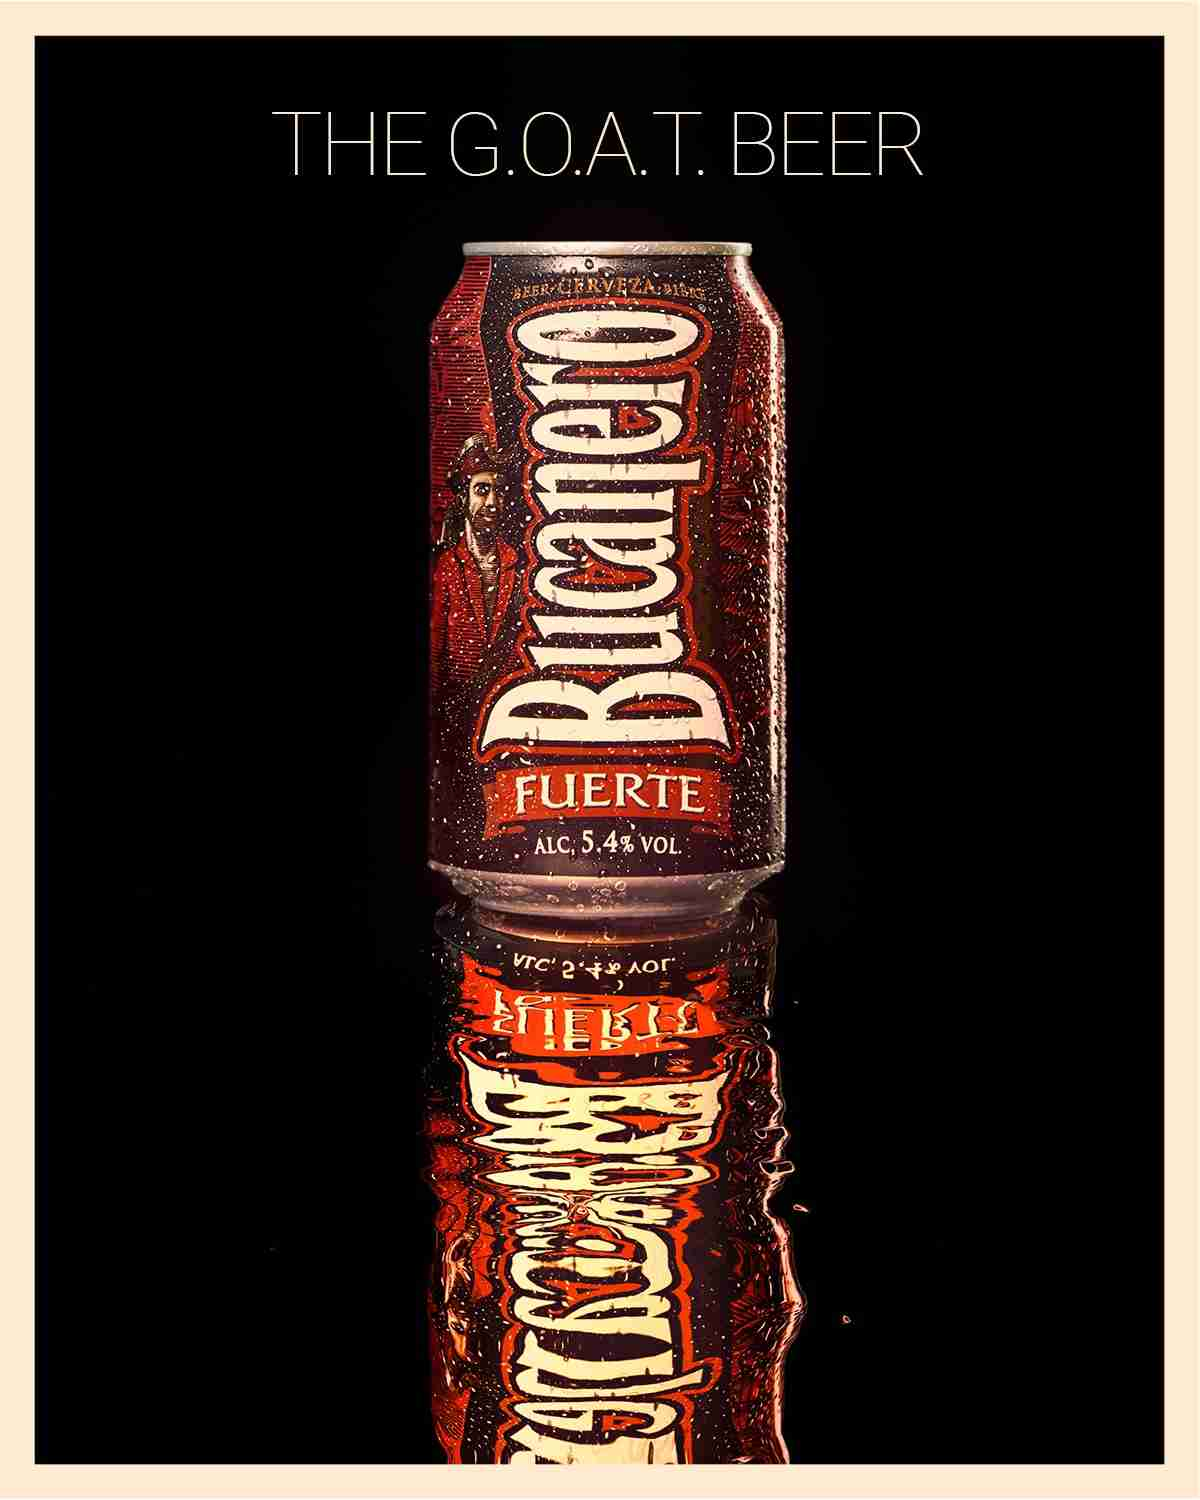 Obra: The G.O.A.T Beer